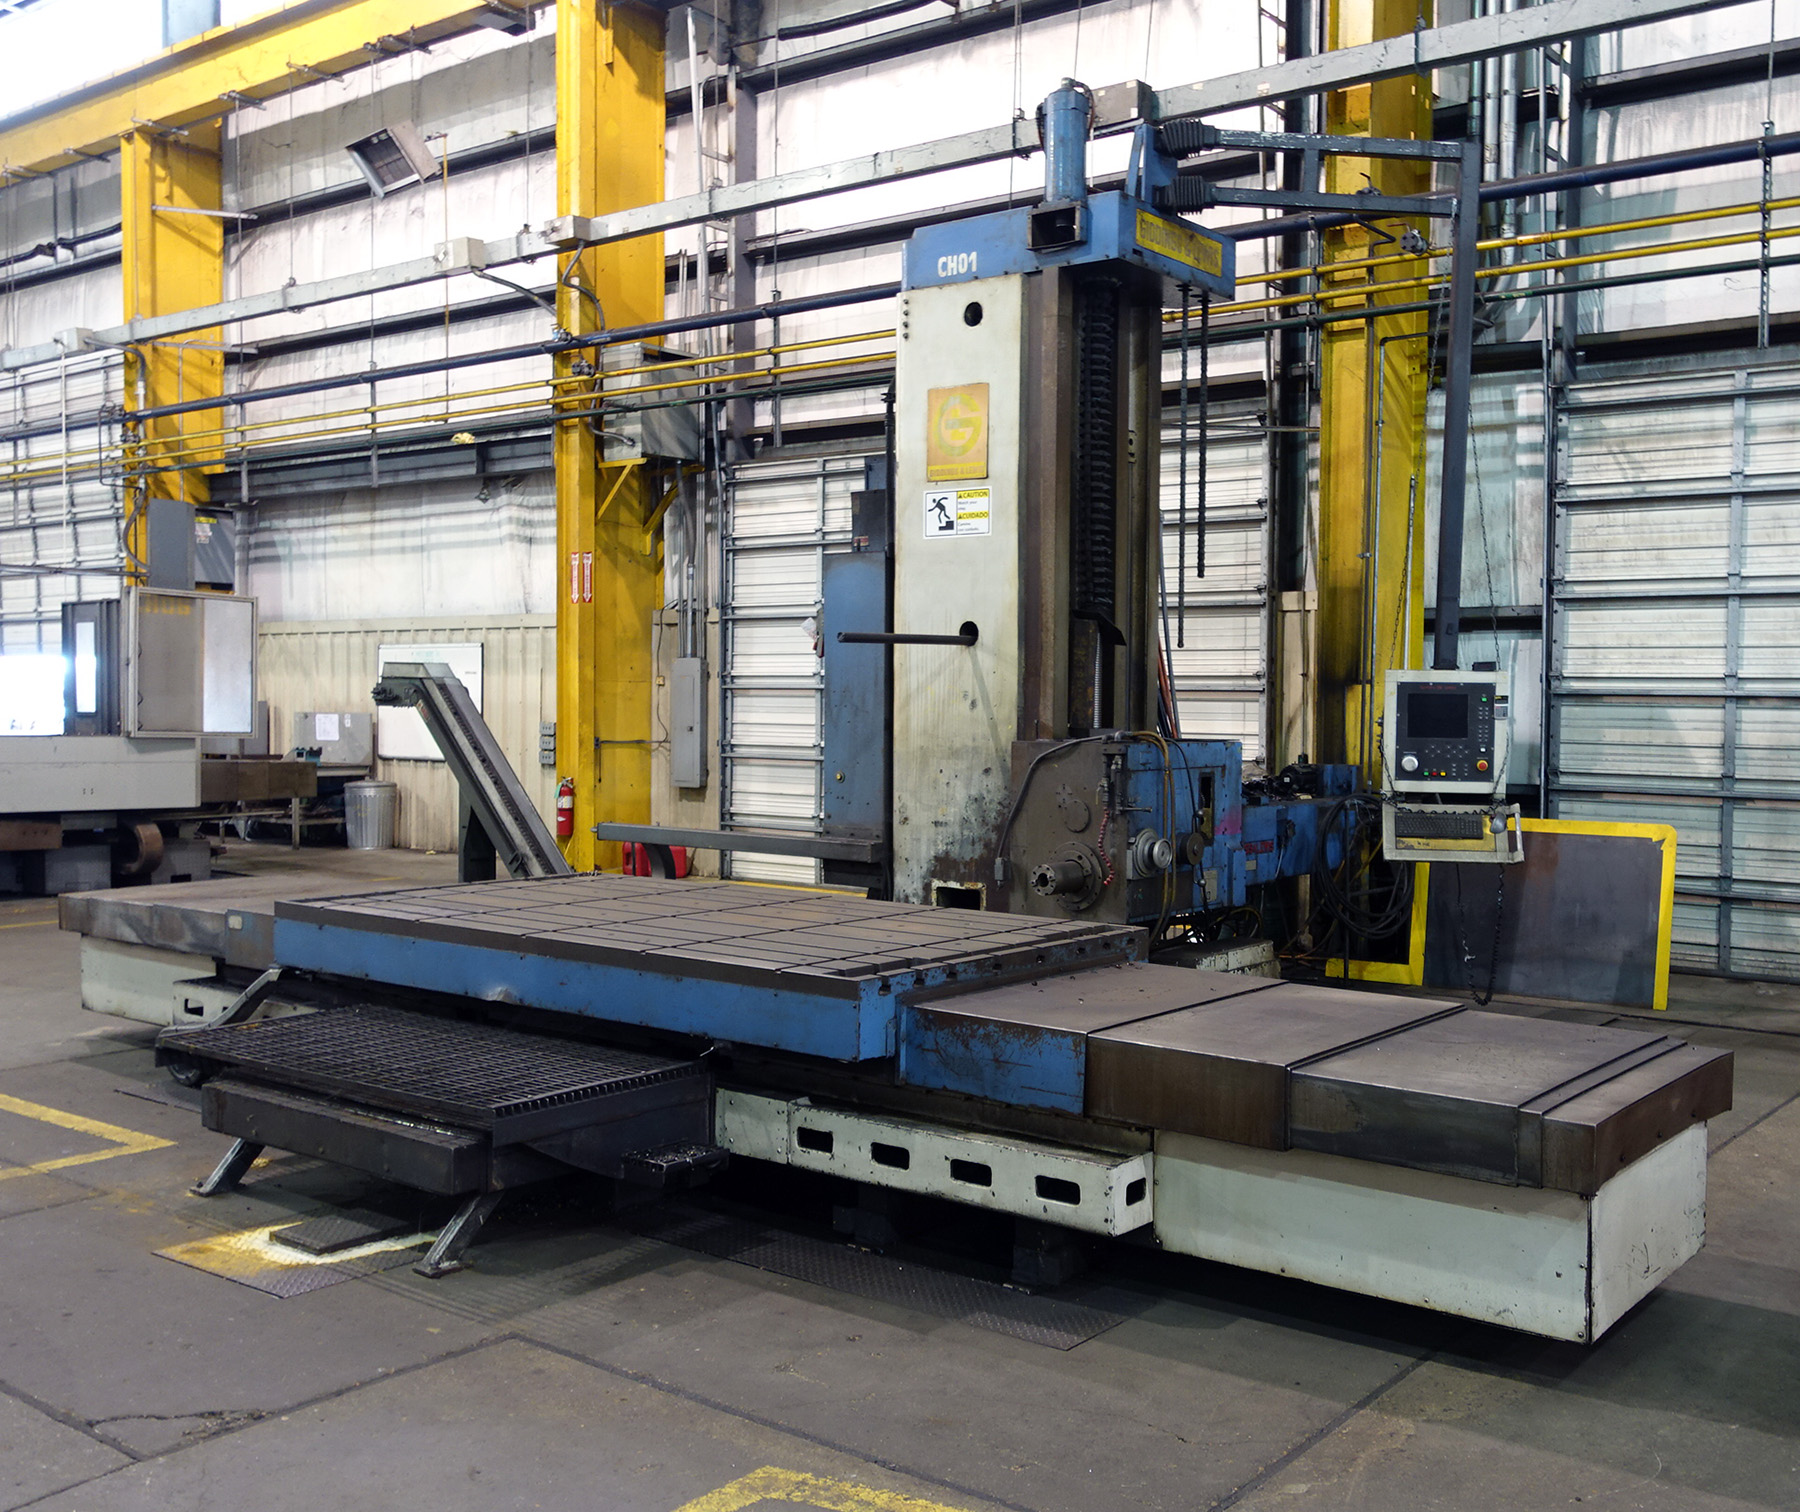 "Lot 56 - GIDDINGS & LEWIS MDL. 70H-6T-3X CNC TABLE TYPE HORIZONTAL BORING MILL, Numatix CNC control, 6"" spdl."